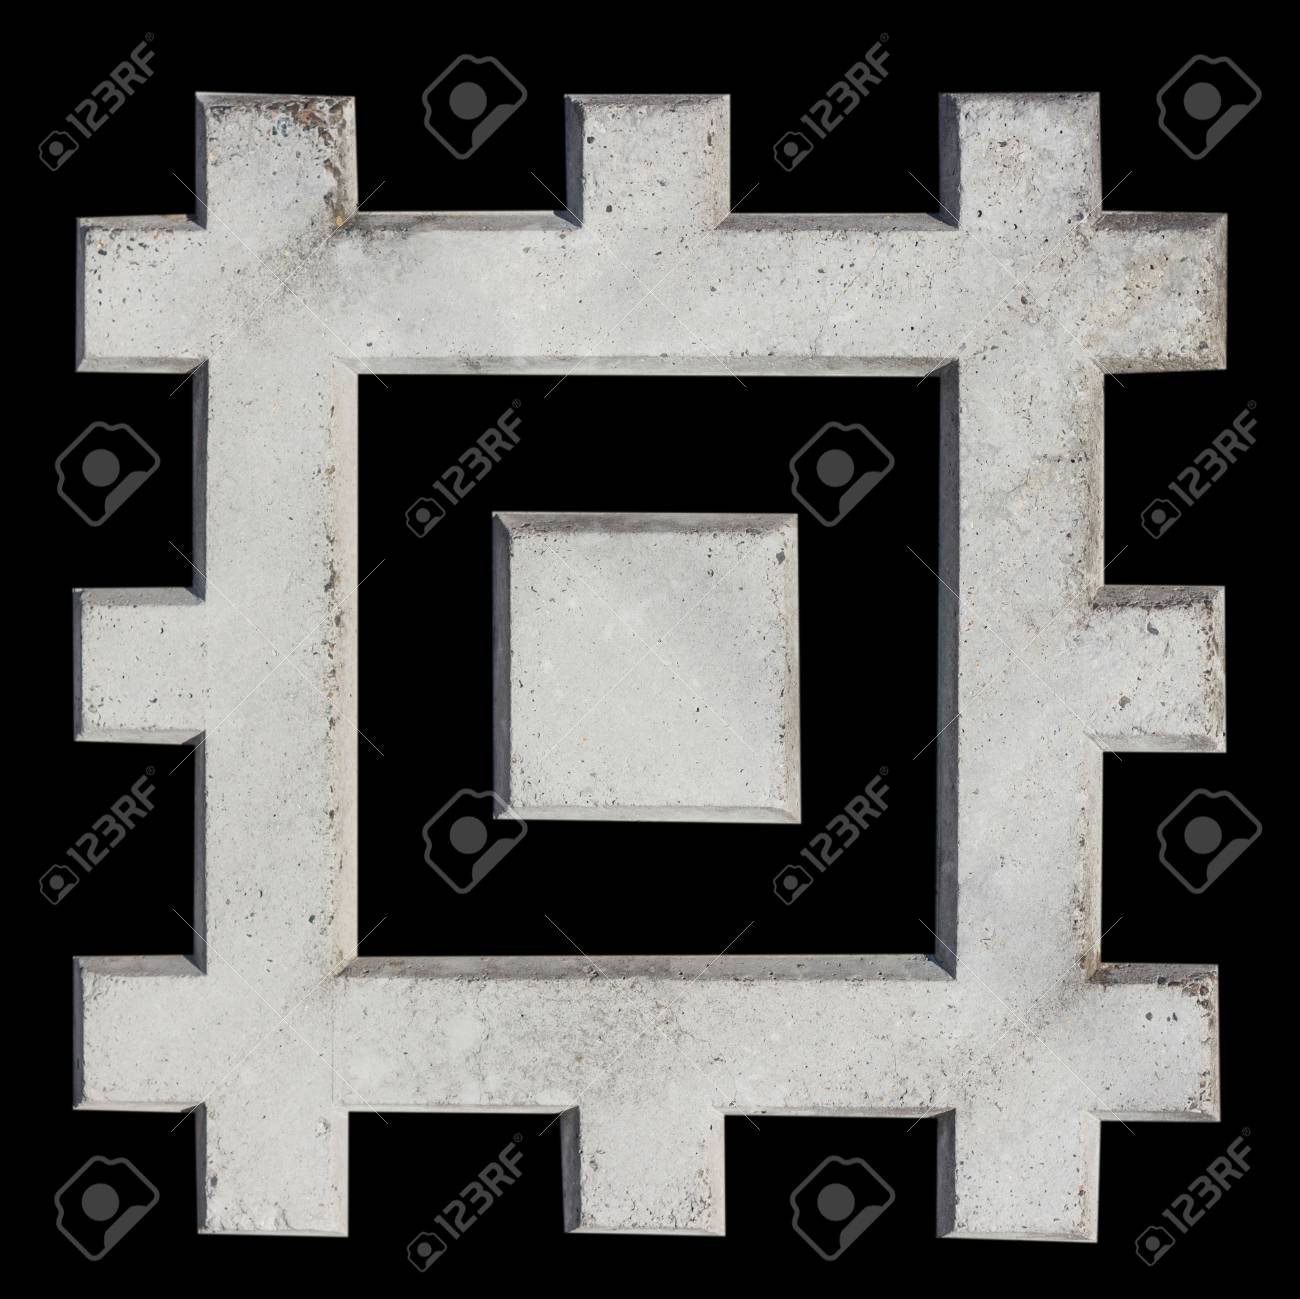 A fragment of concrete fence. Tracery pattern of stone wall as squares. Isolate. Clipping path included. - 74993113